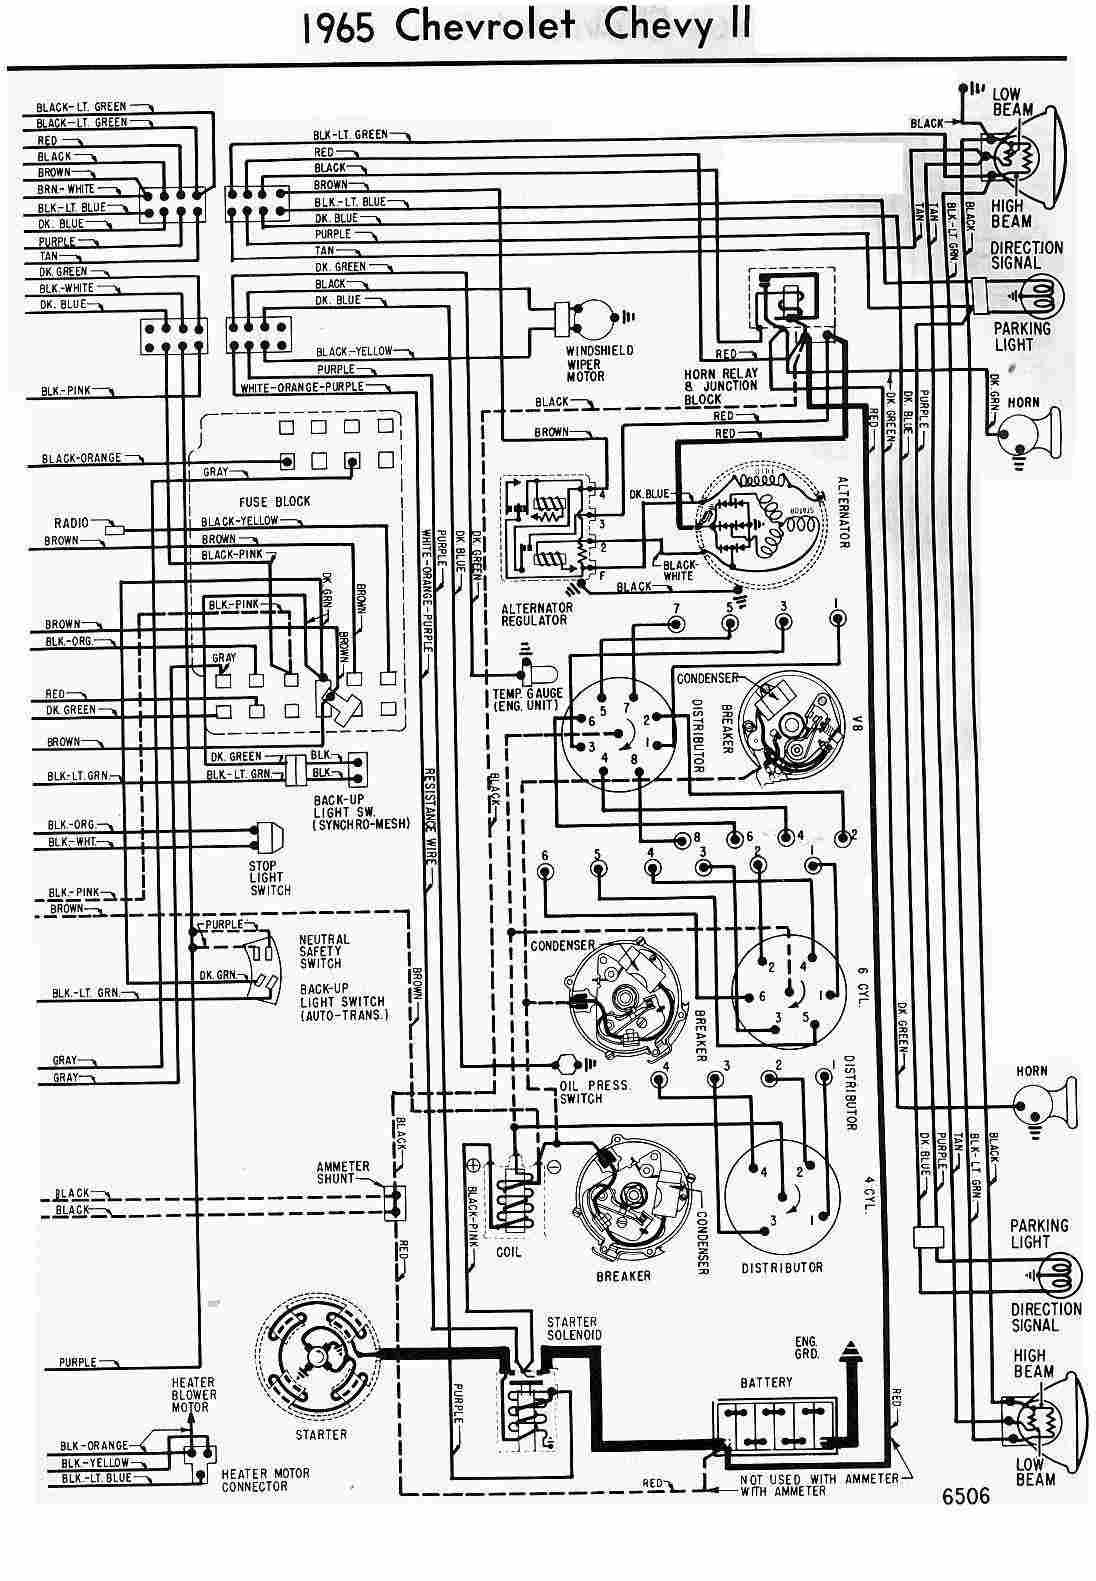 1965 chevy impala wiring diagram free download wiring diagram u2022 rh tinyforge co Chevy Wiring Harness Diagram 82 Chevy Pickup Engine Wiring Diagram